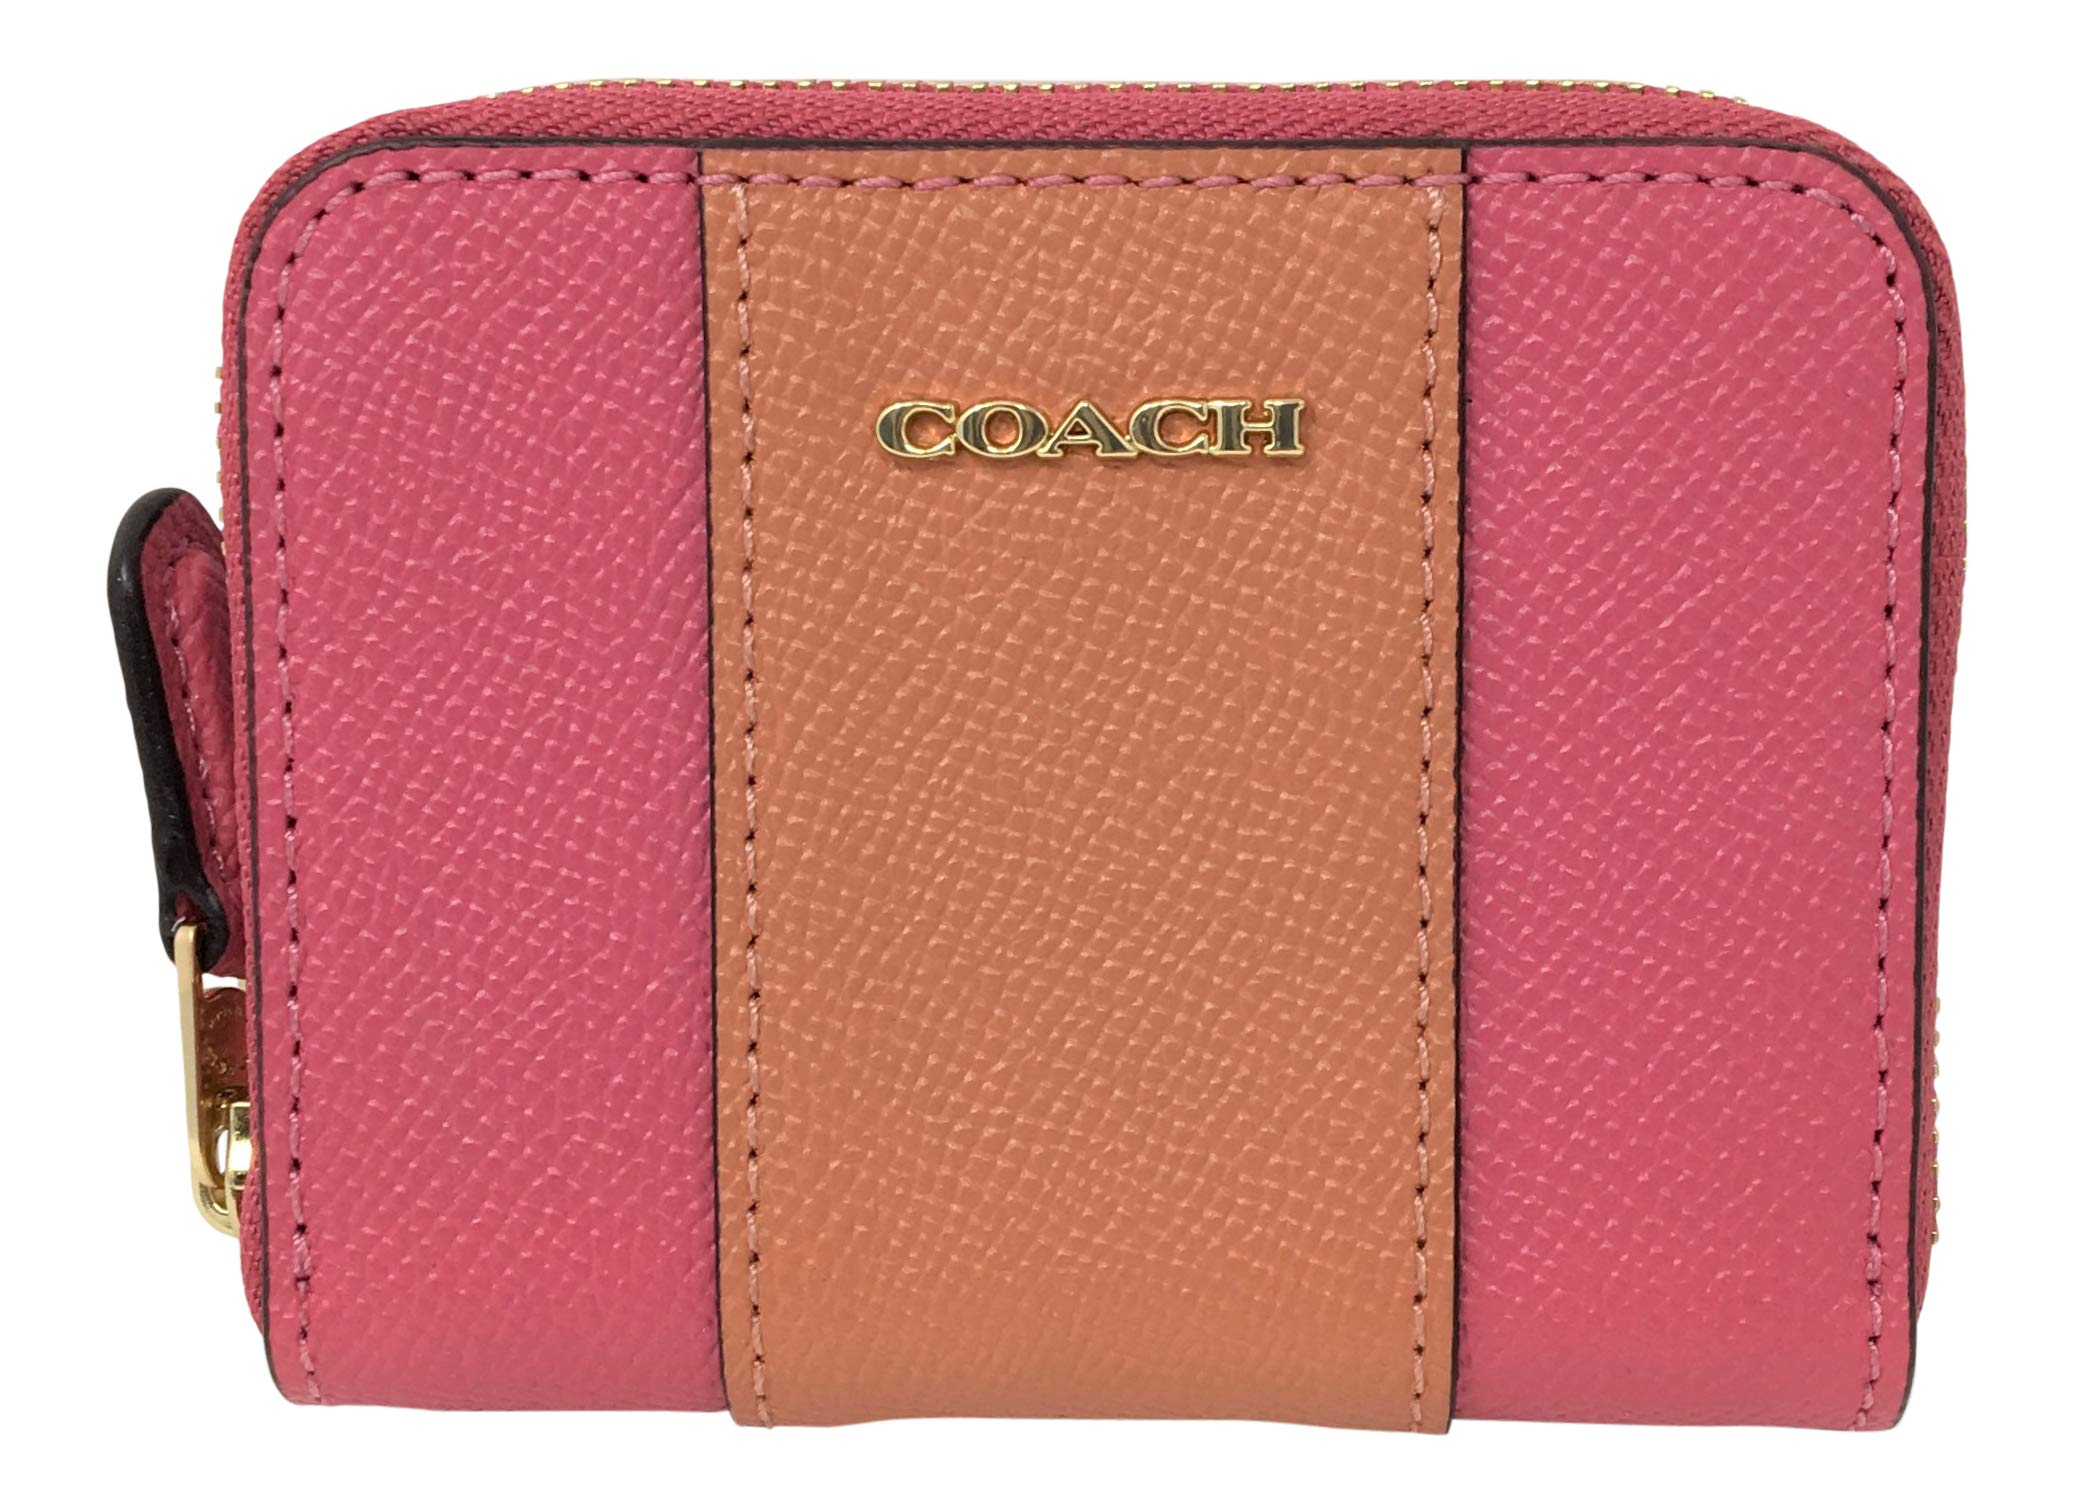 Coach Mini Zip Around Card Case in Crossgrain Leather Pink Ruby F68623 by Coach